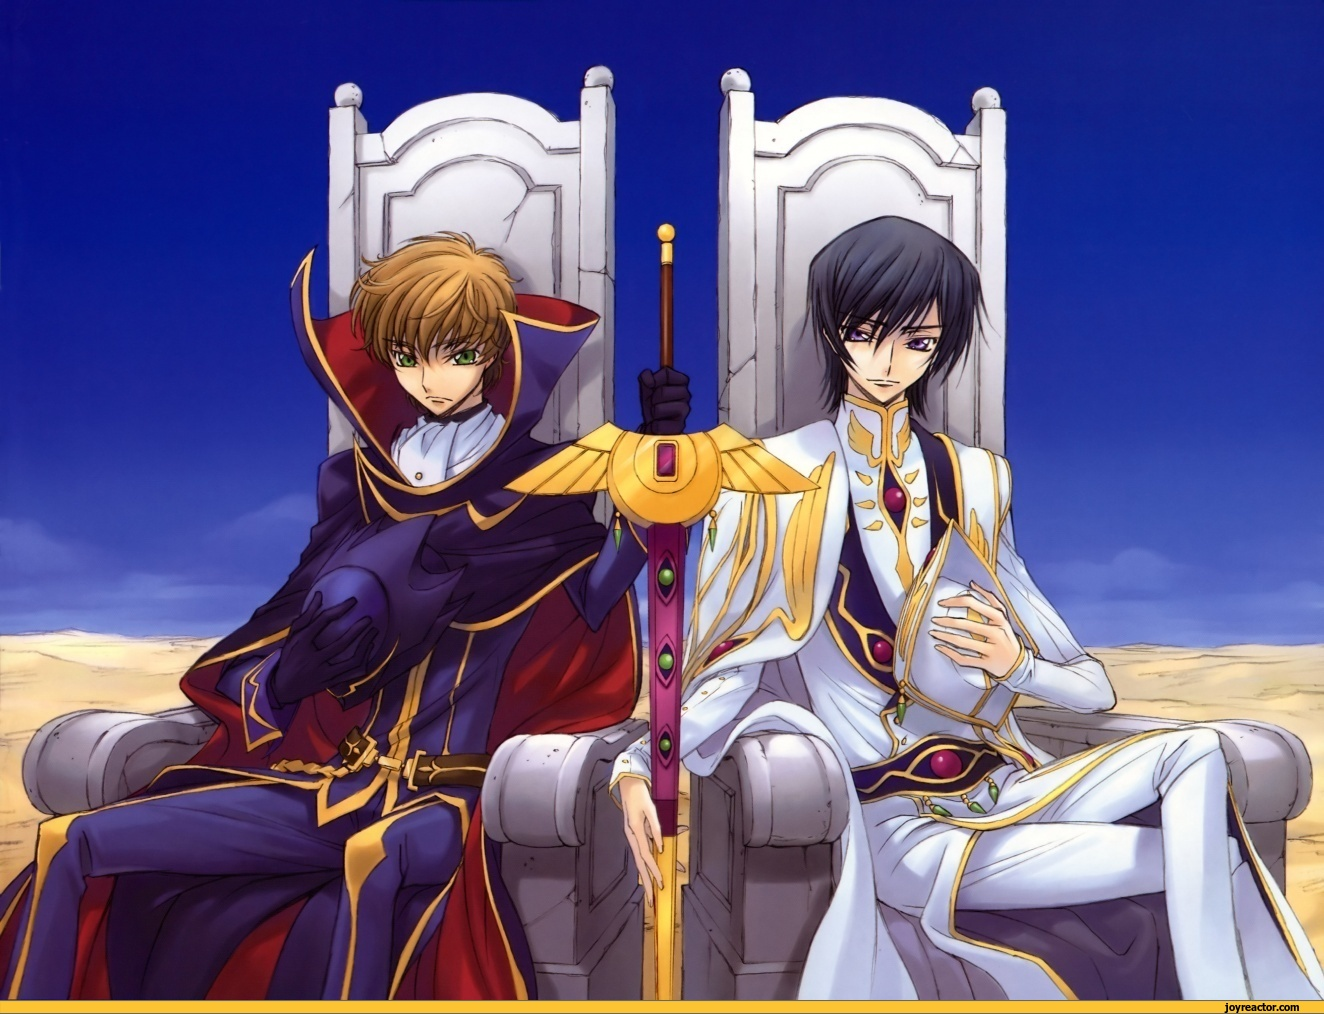 Pix   Lelouch Code Geass Suzaku  Lol Funny Anime Photo Lelouch And